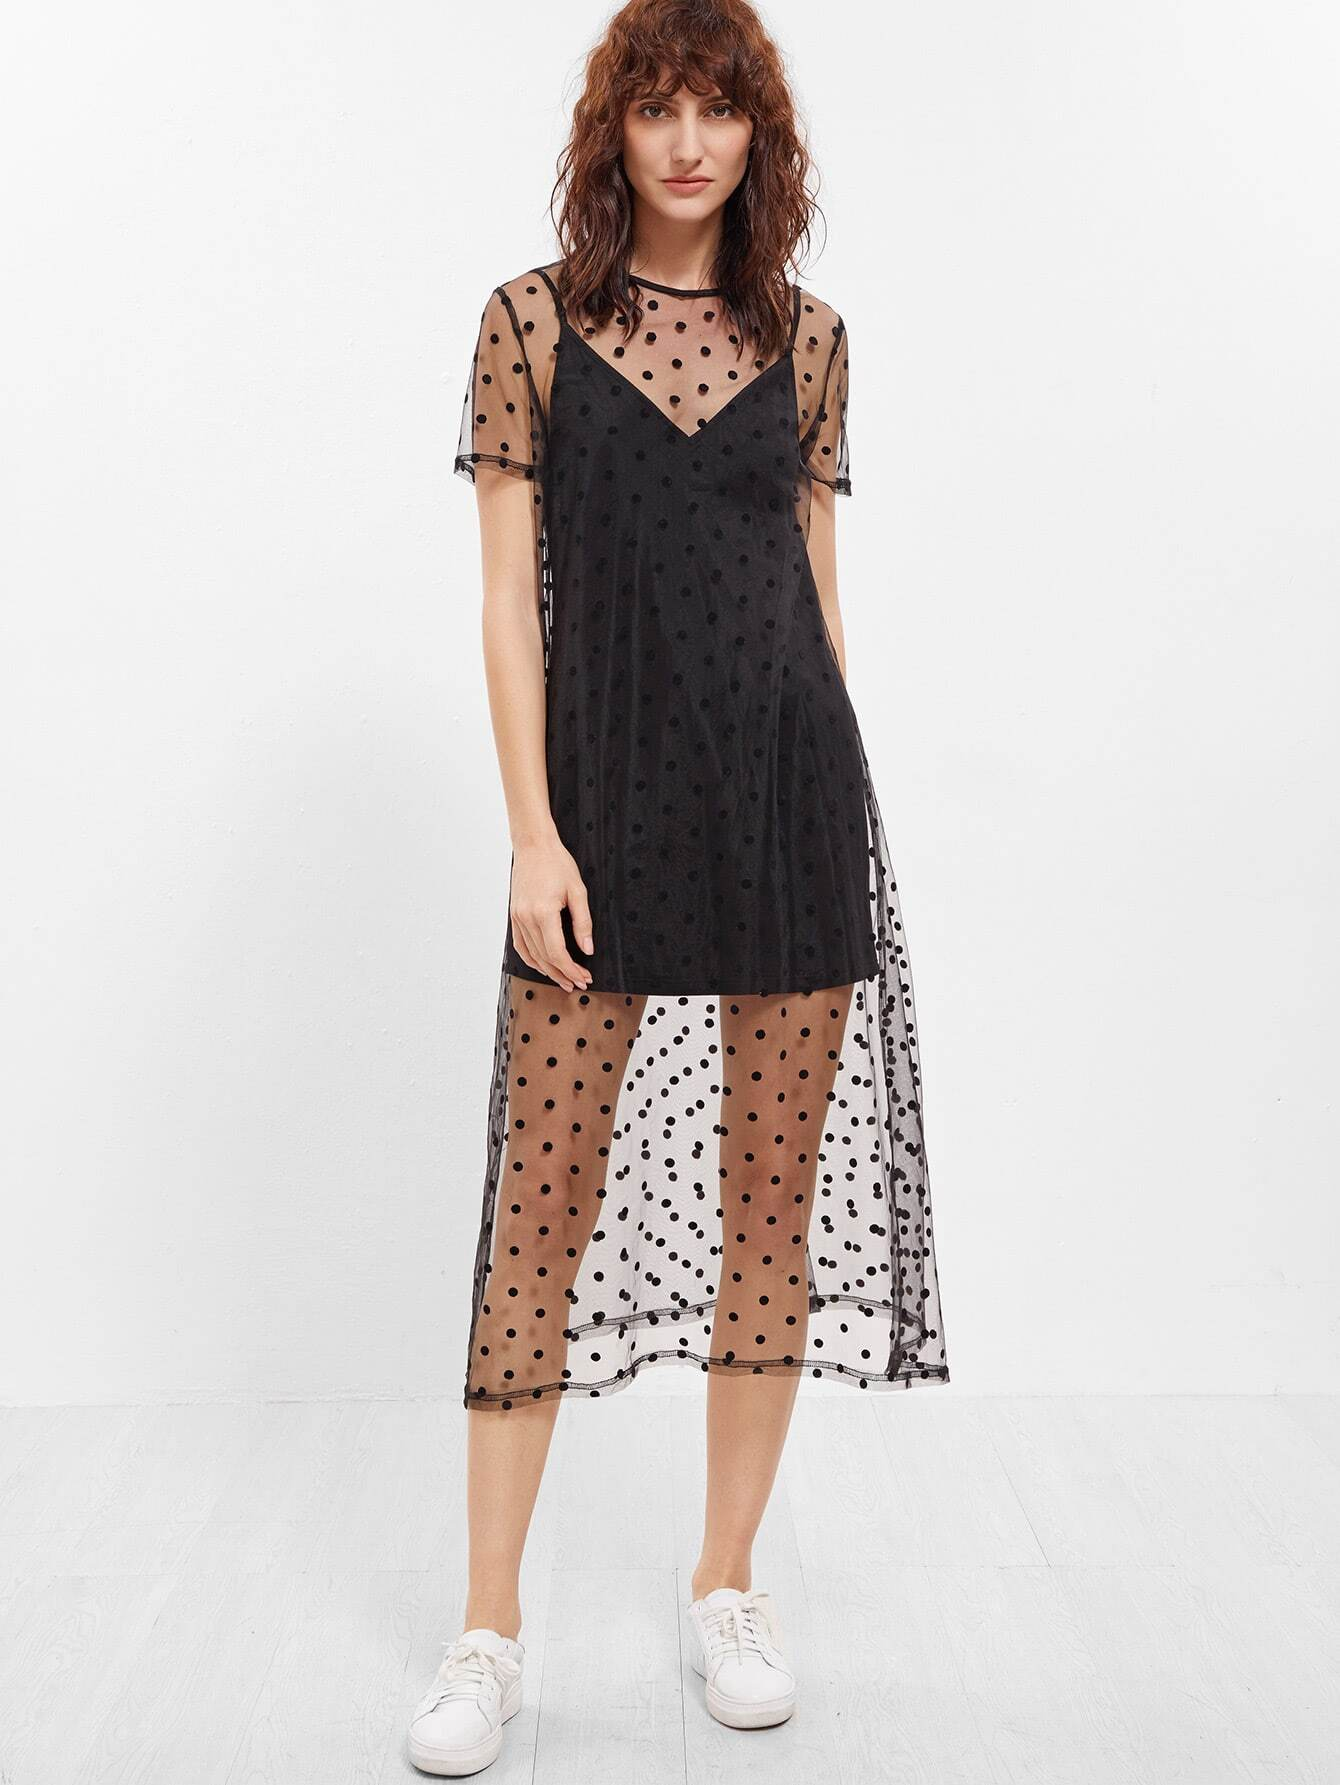 Black Sheer Polka Dot Mesh Short Sleeve Dress With Cami